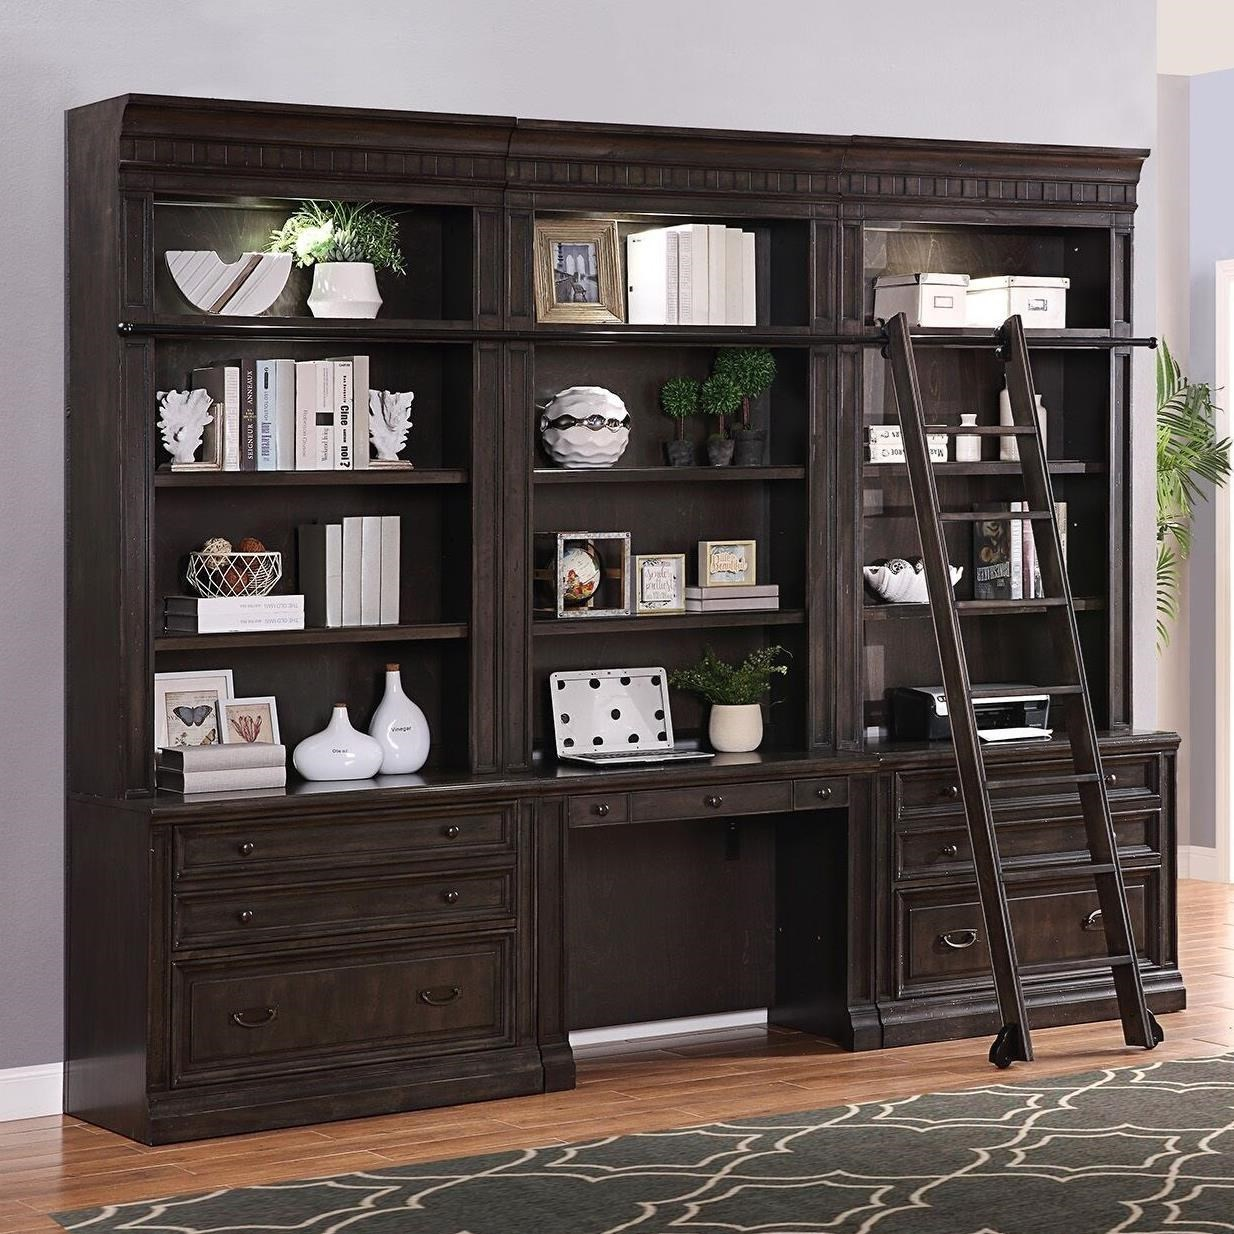 Parker House Washington Heights Bookcase Wall Unit With Desk